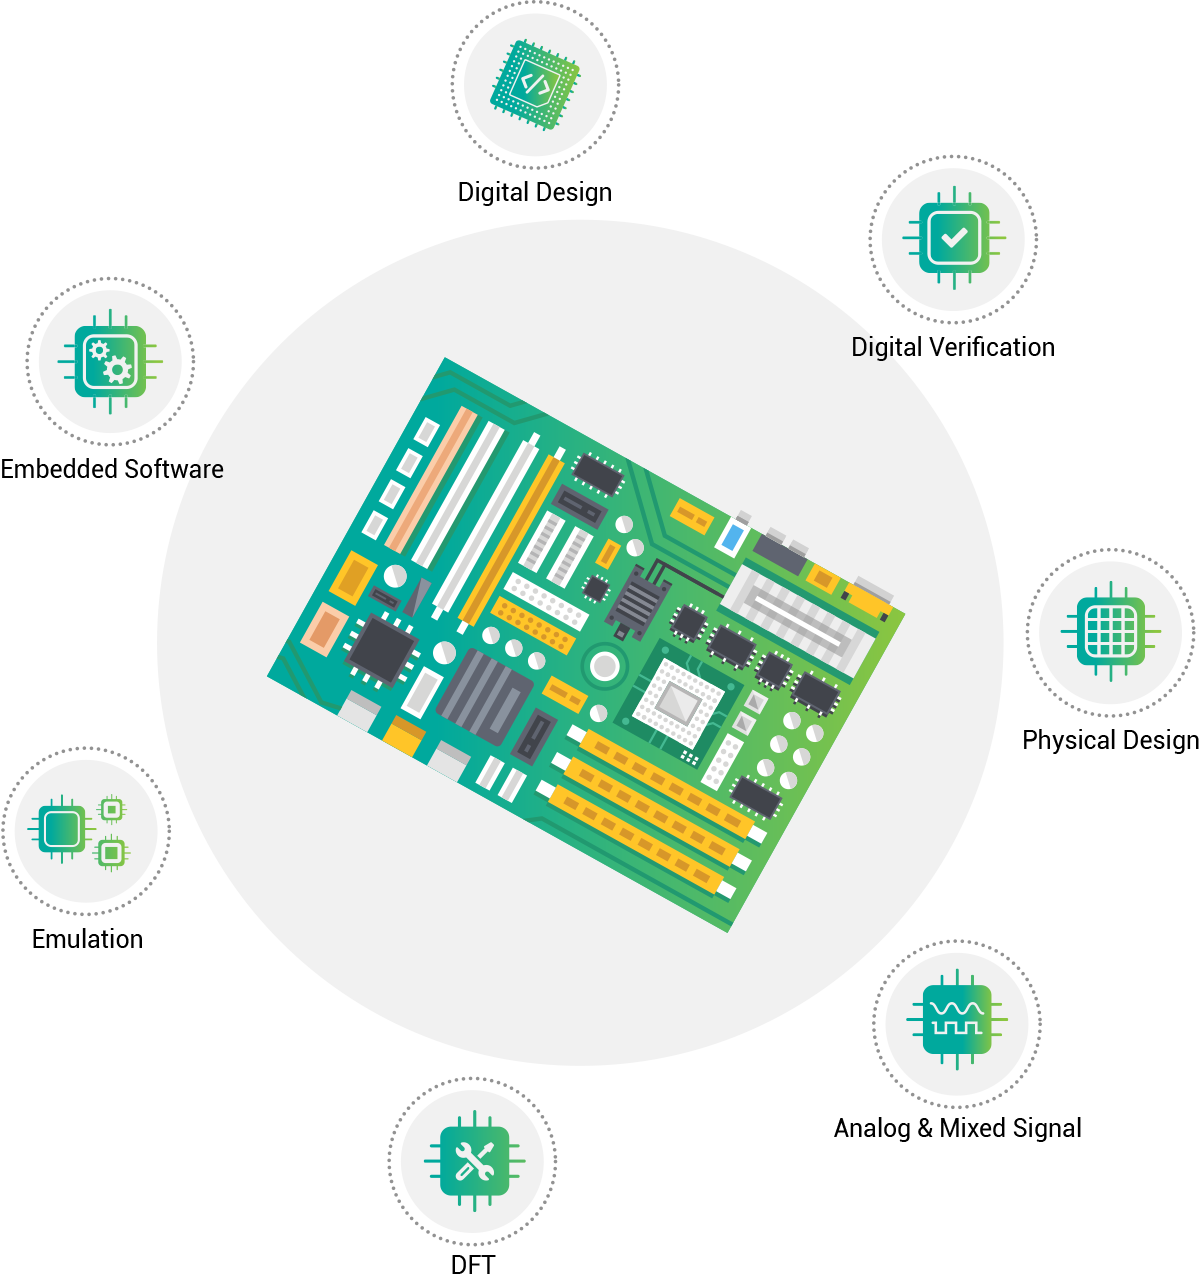 Services Perfectvips Hardware Solutions Electronic Circuit Design And Development Has Domain Expertise To Enable Customers Develop Products For Silicon Validation Emulation Verification Board